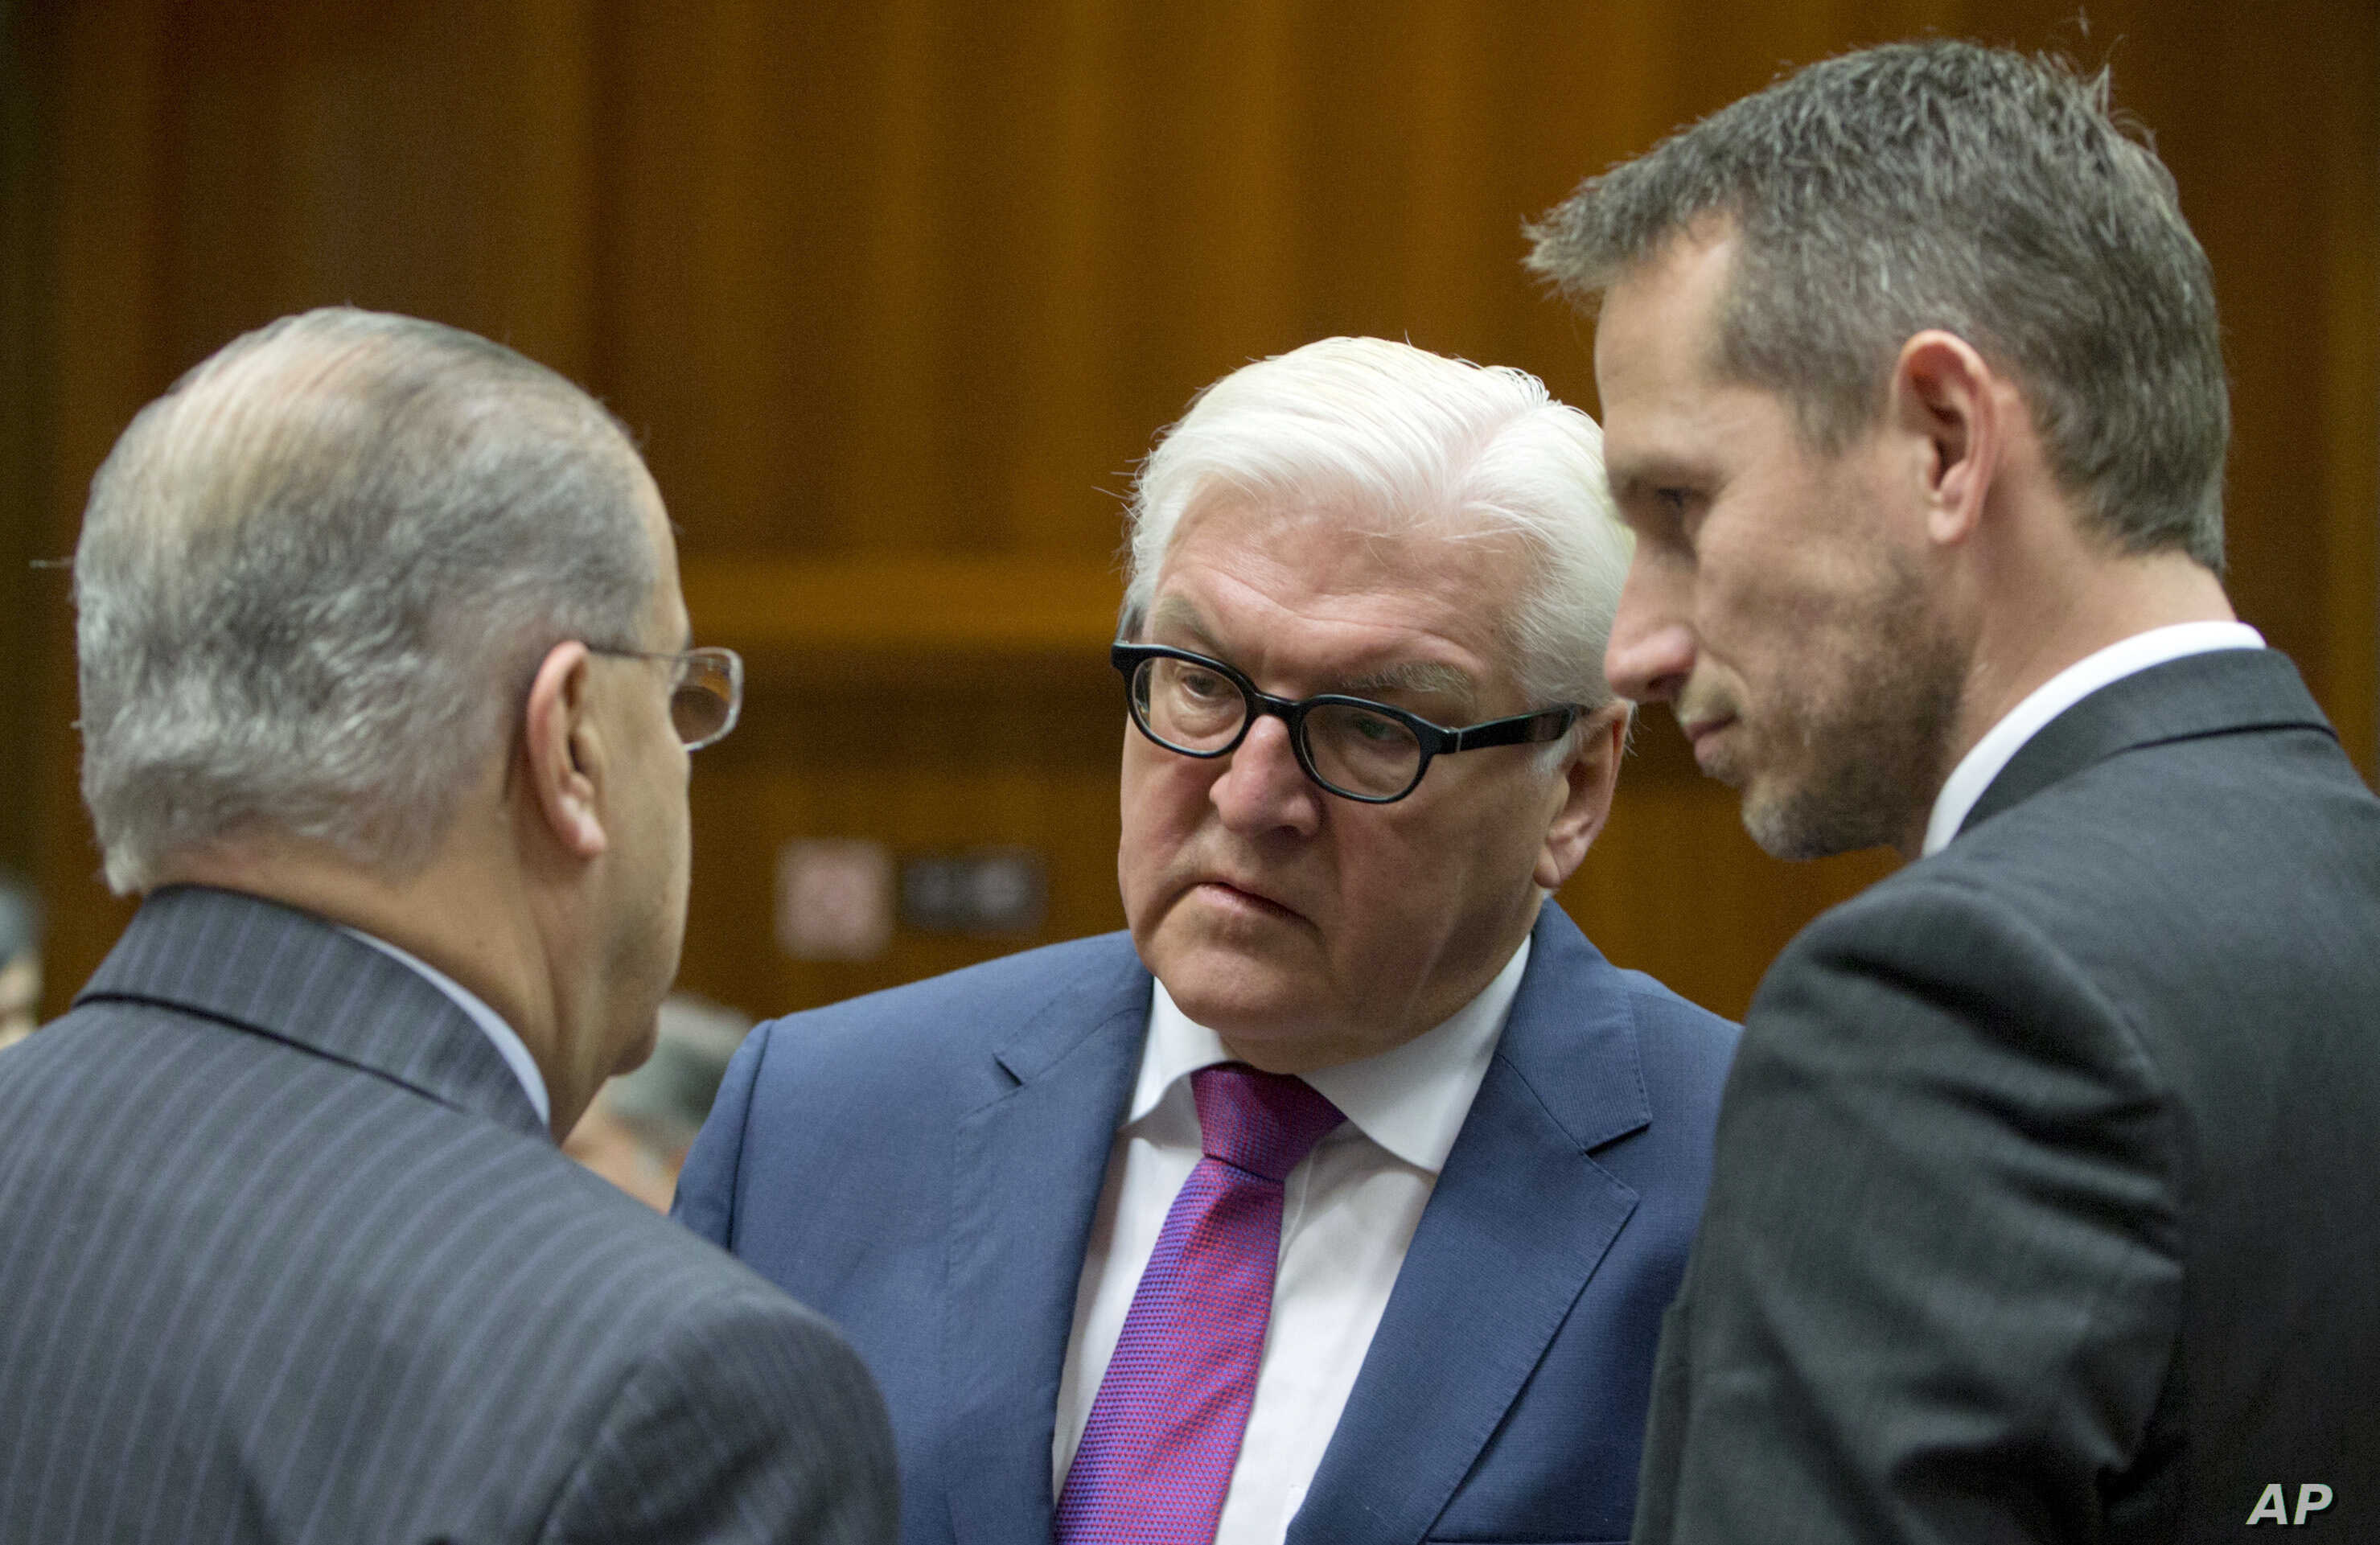 German Foreign Minister Frank-Walter Steinmeier, center, speaks with Cypriot Foreign Minister Ioannis Kasoulides, left, and Danish Foreign Minister Kristian Jensen, right, during a meeting of EU foreign ministers at the EU Council building in Brussel